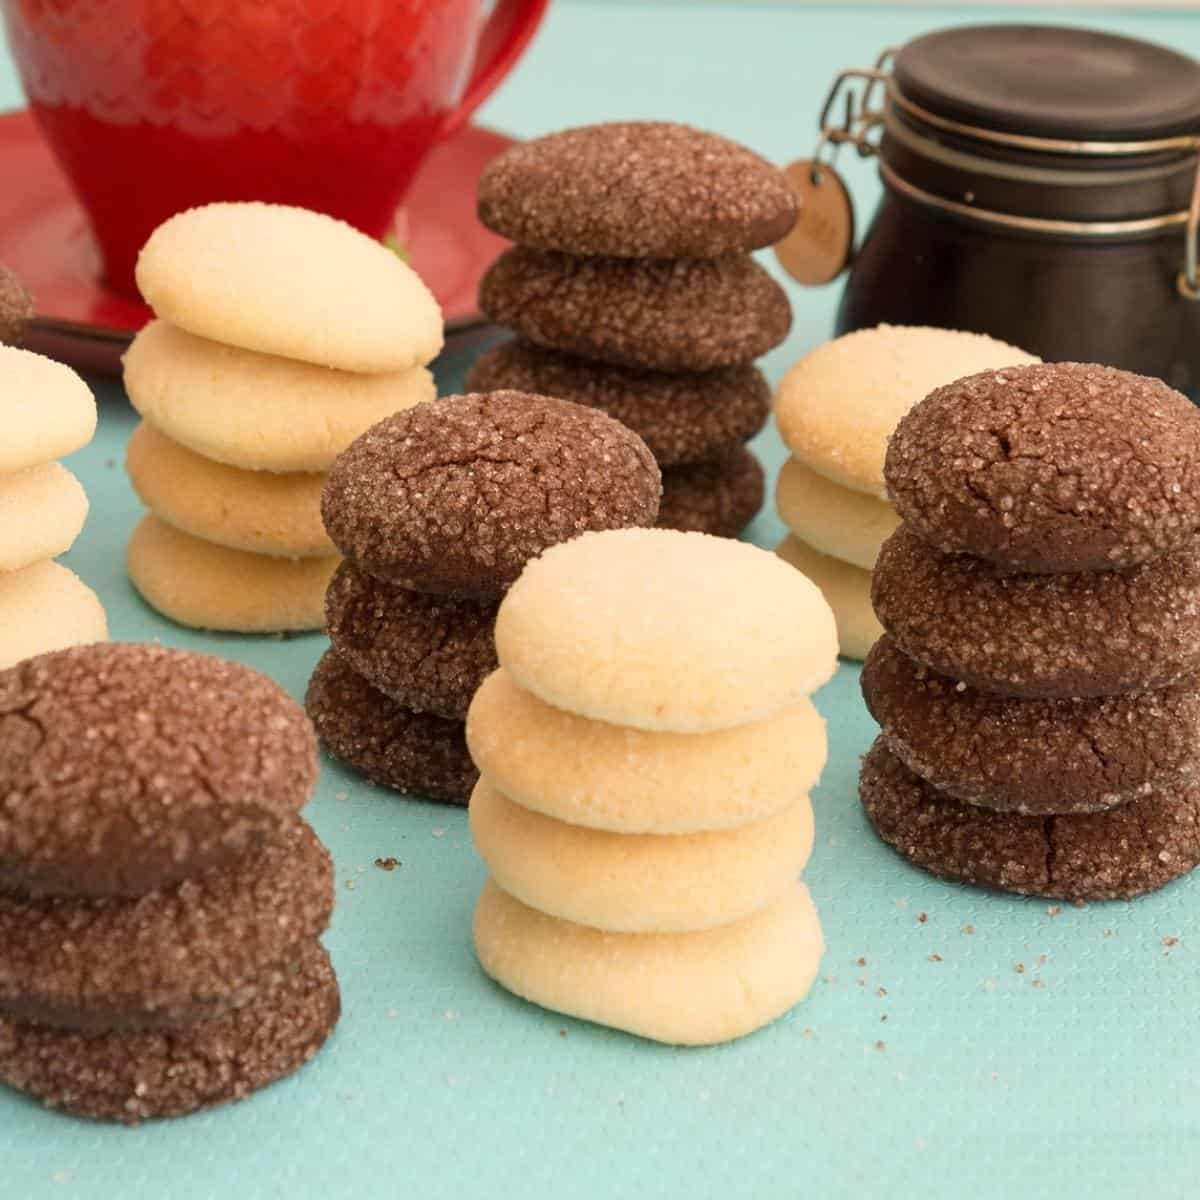 Vanilla and chocolate shortbread cookies on a blue table